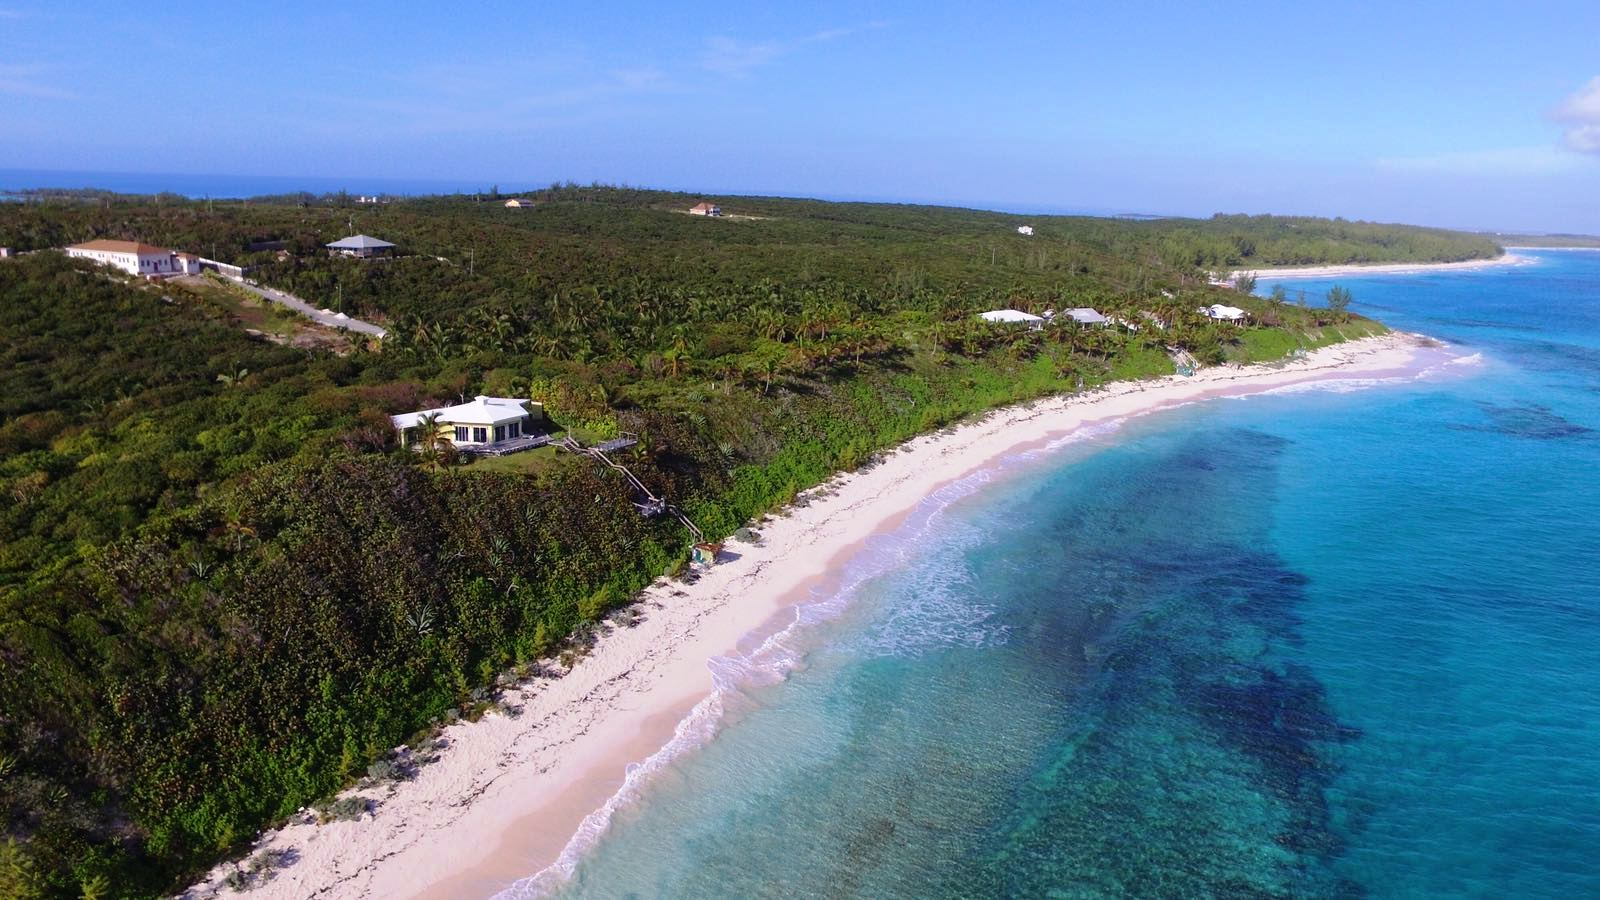 Land for Sale at Stunning Beach Lot Knowles Drive - Lot # 5, Breezeaway Estates Governors Harbour, Eleuthera, Bahamas